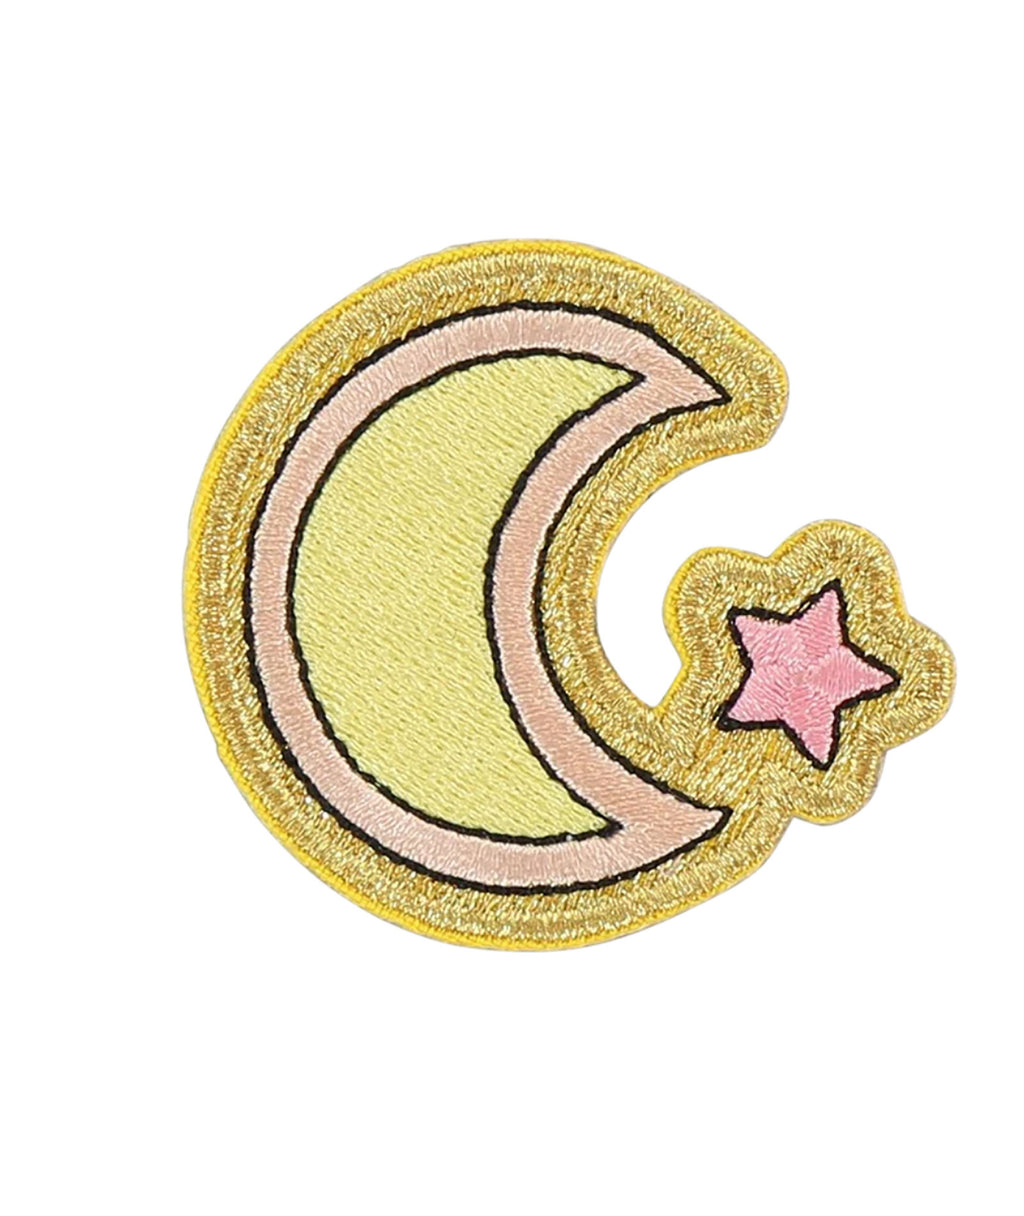 Stoney Clover Moon and Star Patch